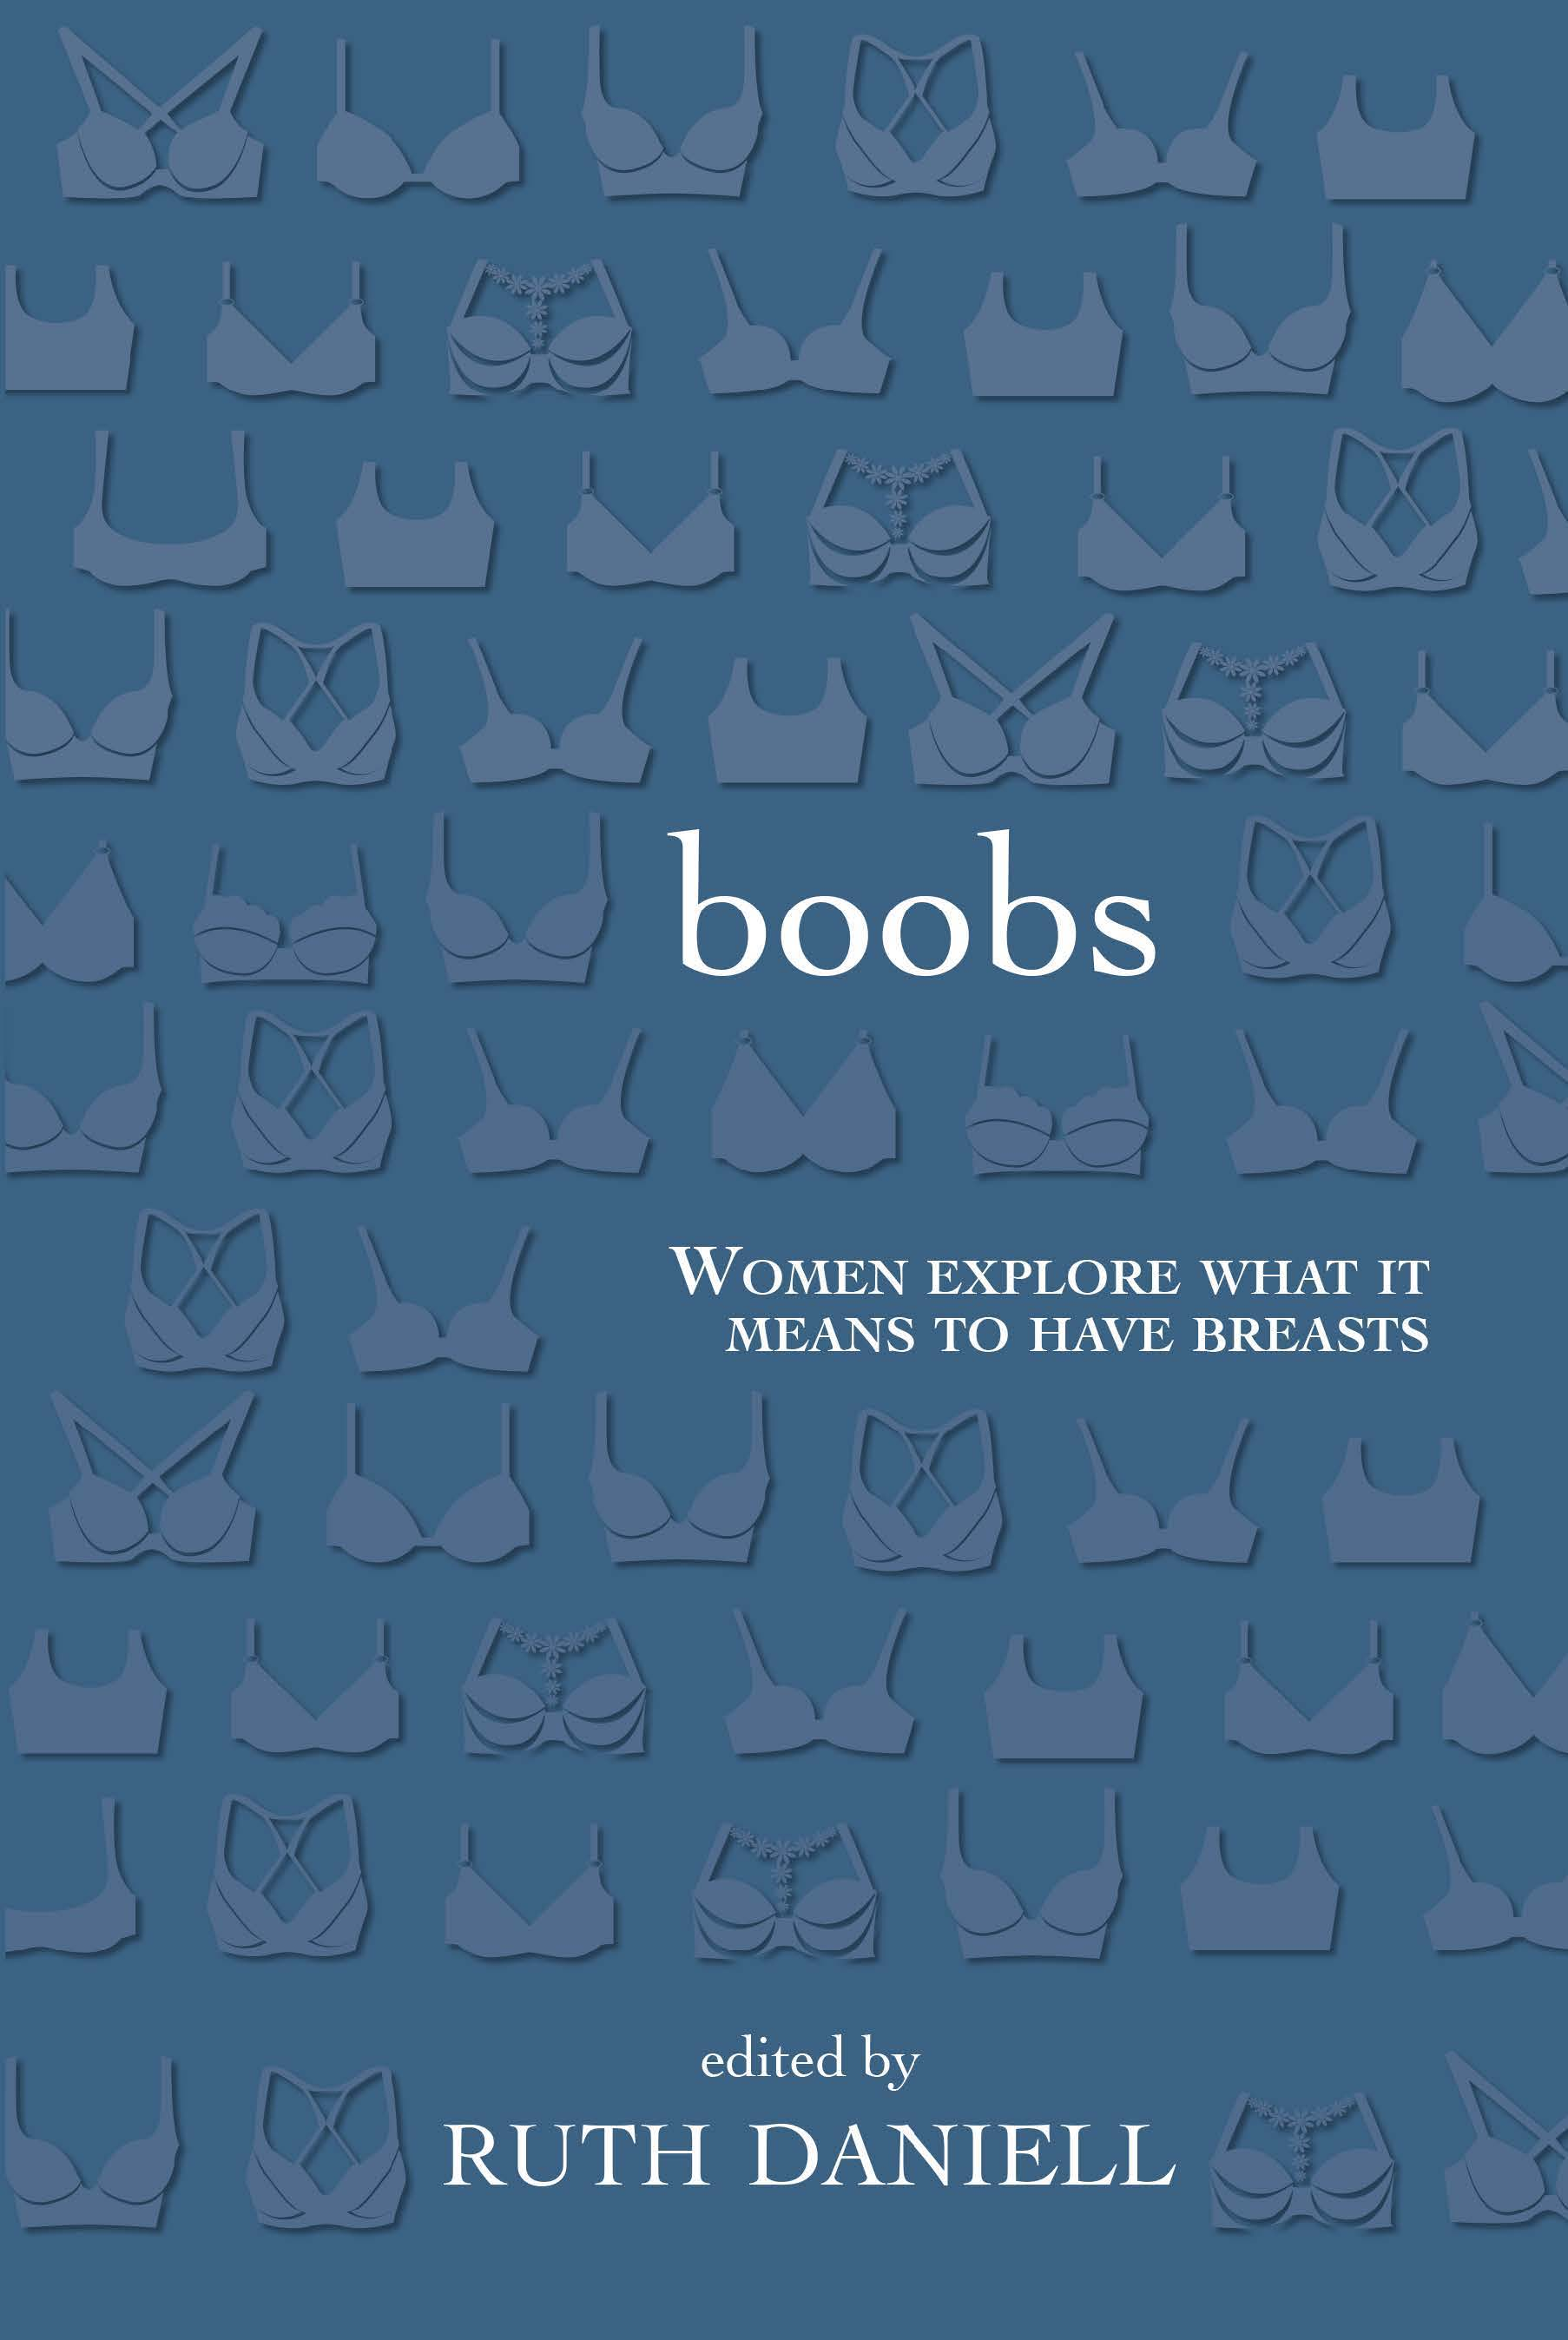 Boobs: Women Explore What It Means to Have Breasts